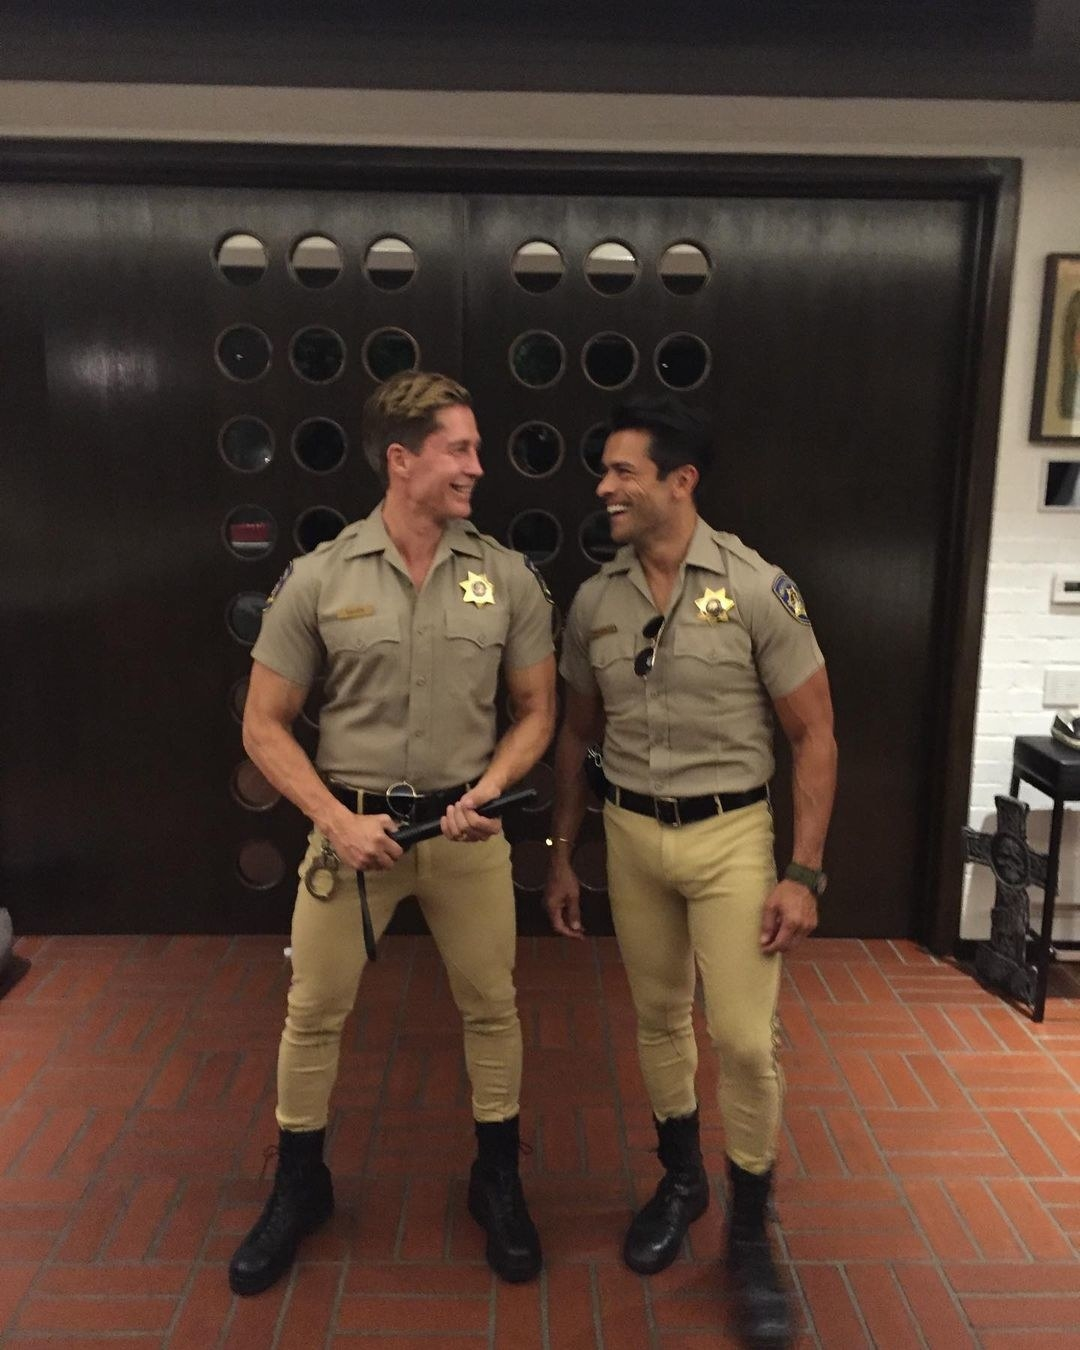 Mark Consuelos posing in an law enforcement costume next to a man wearing a similar outfit